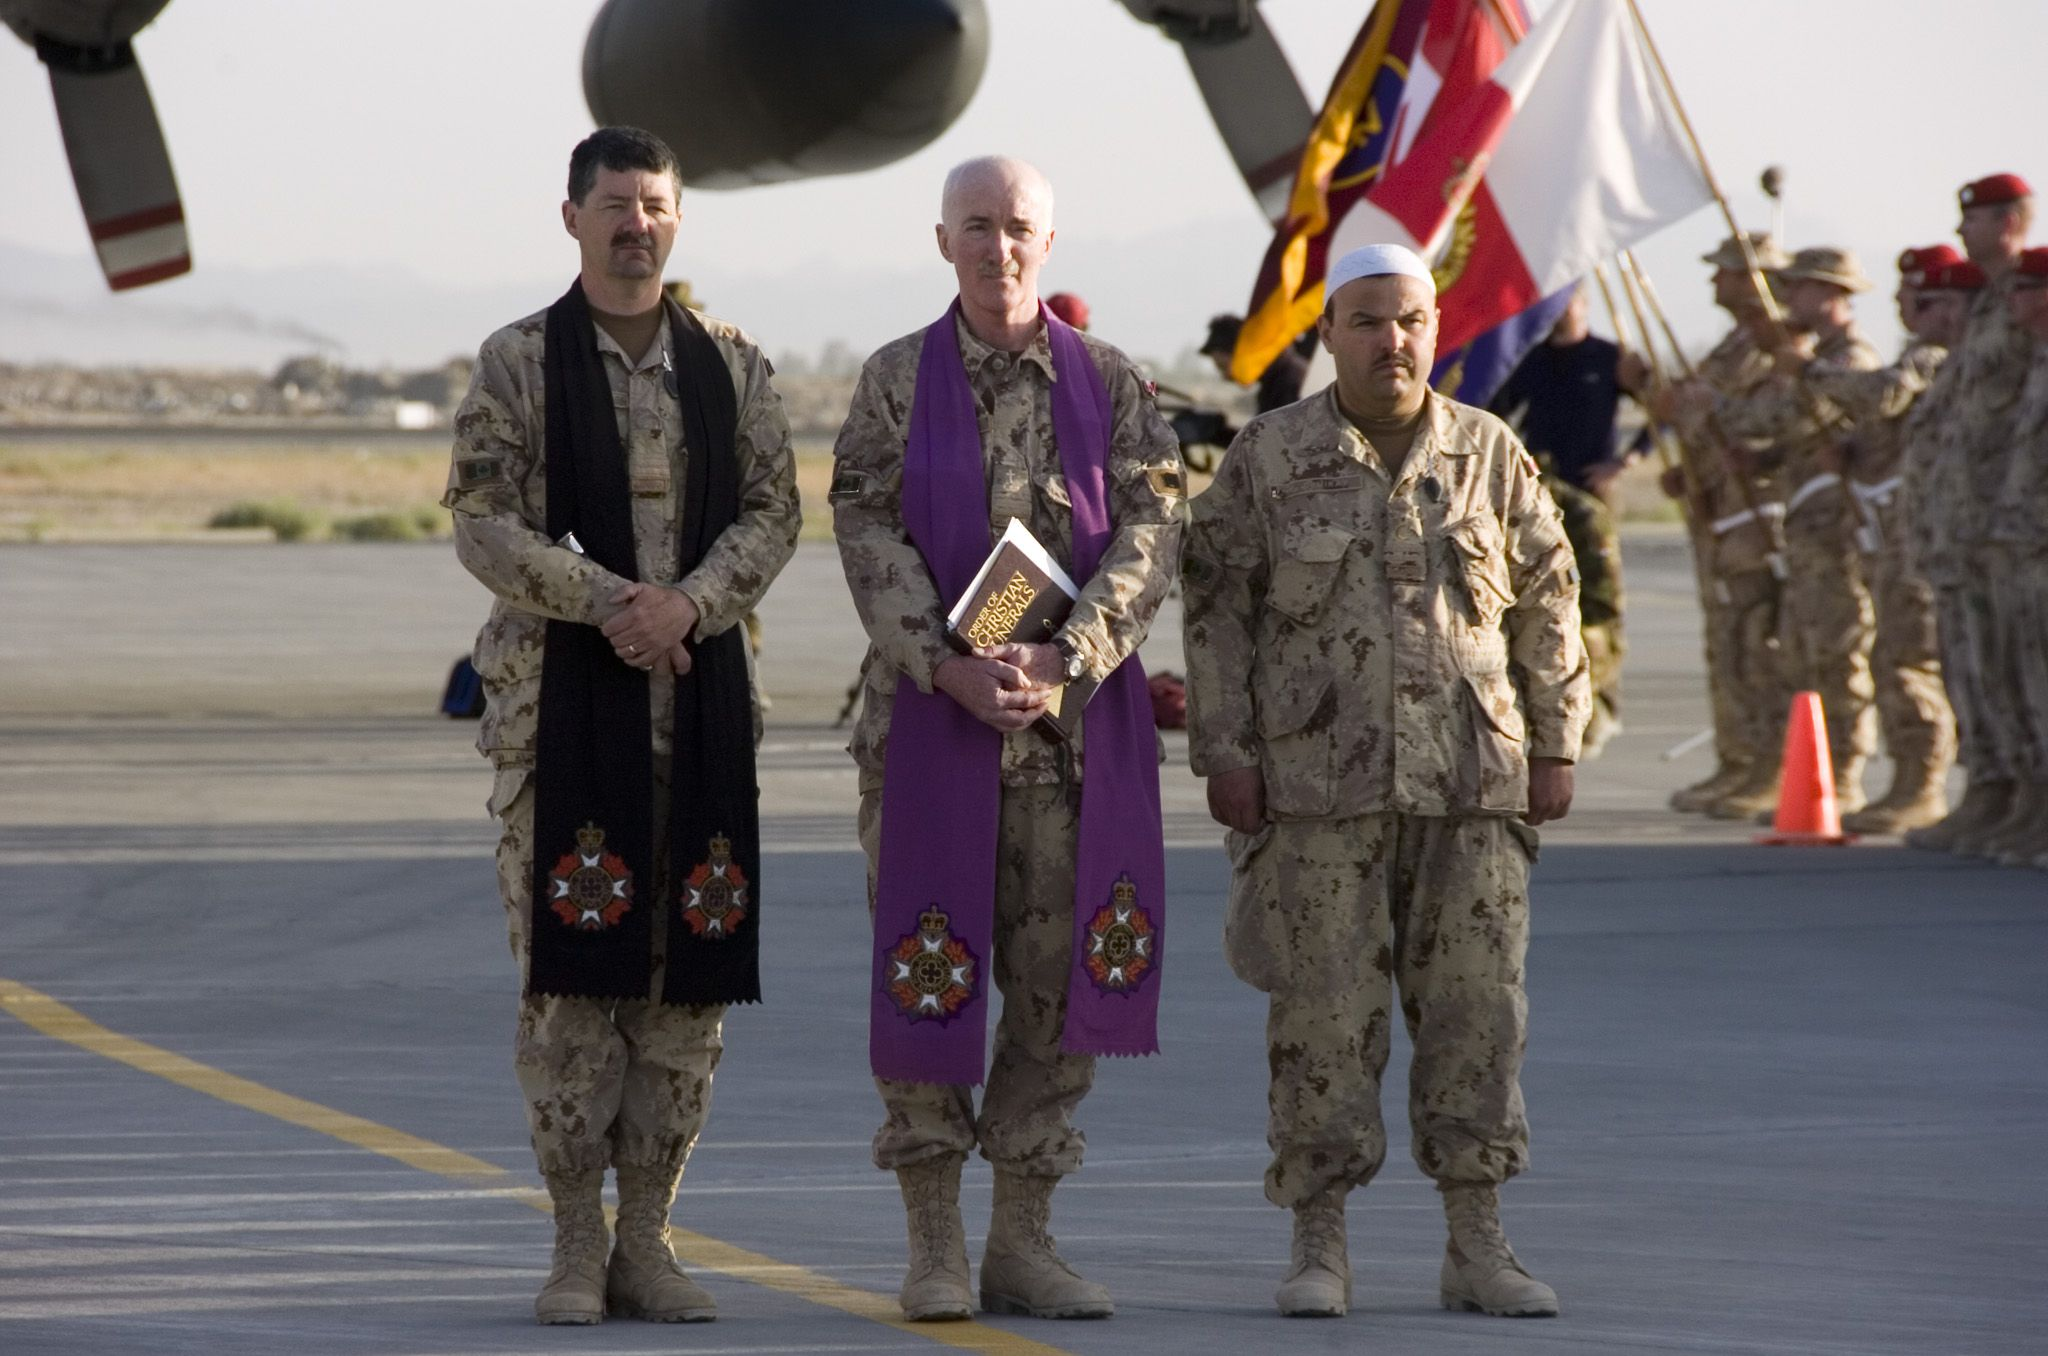 Army News National Canadian Army Article Chaplains Counsel Critical To The Army Chain Of Command Canadian Army Canadian Armed Forces Canadian Forces